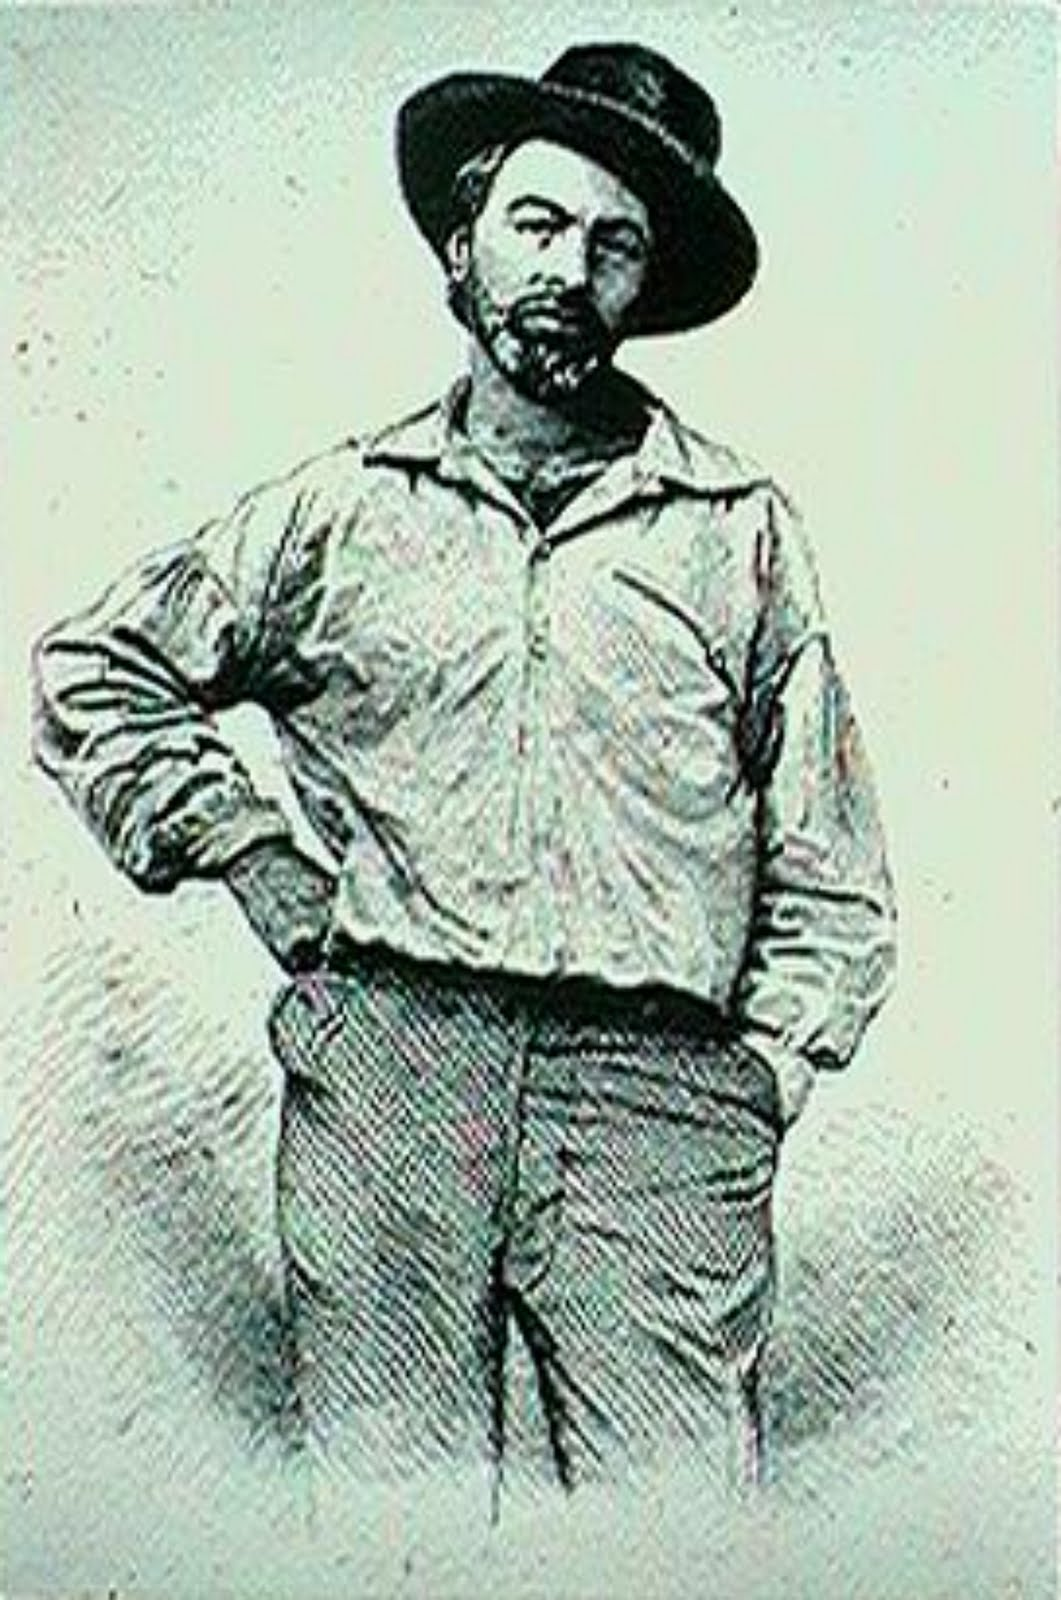 walt whitman and emily dickinson Free essay: walt whitman and emily dickinson both had different and similar views, which influenced how they wrote their poetry their social context, life.